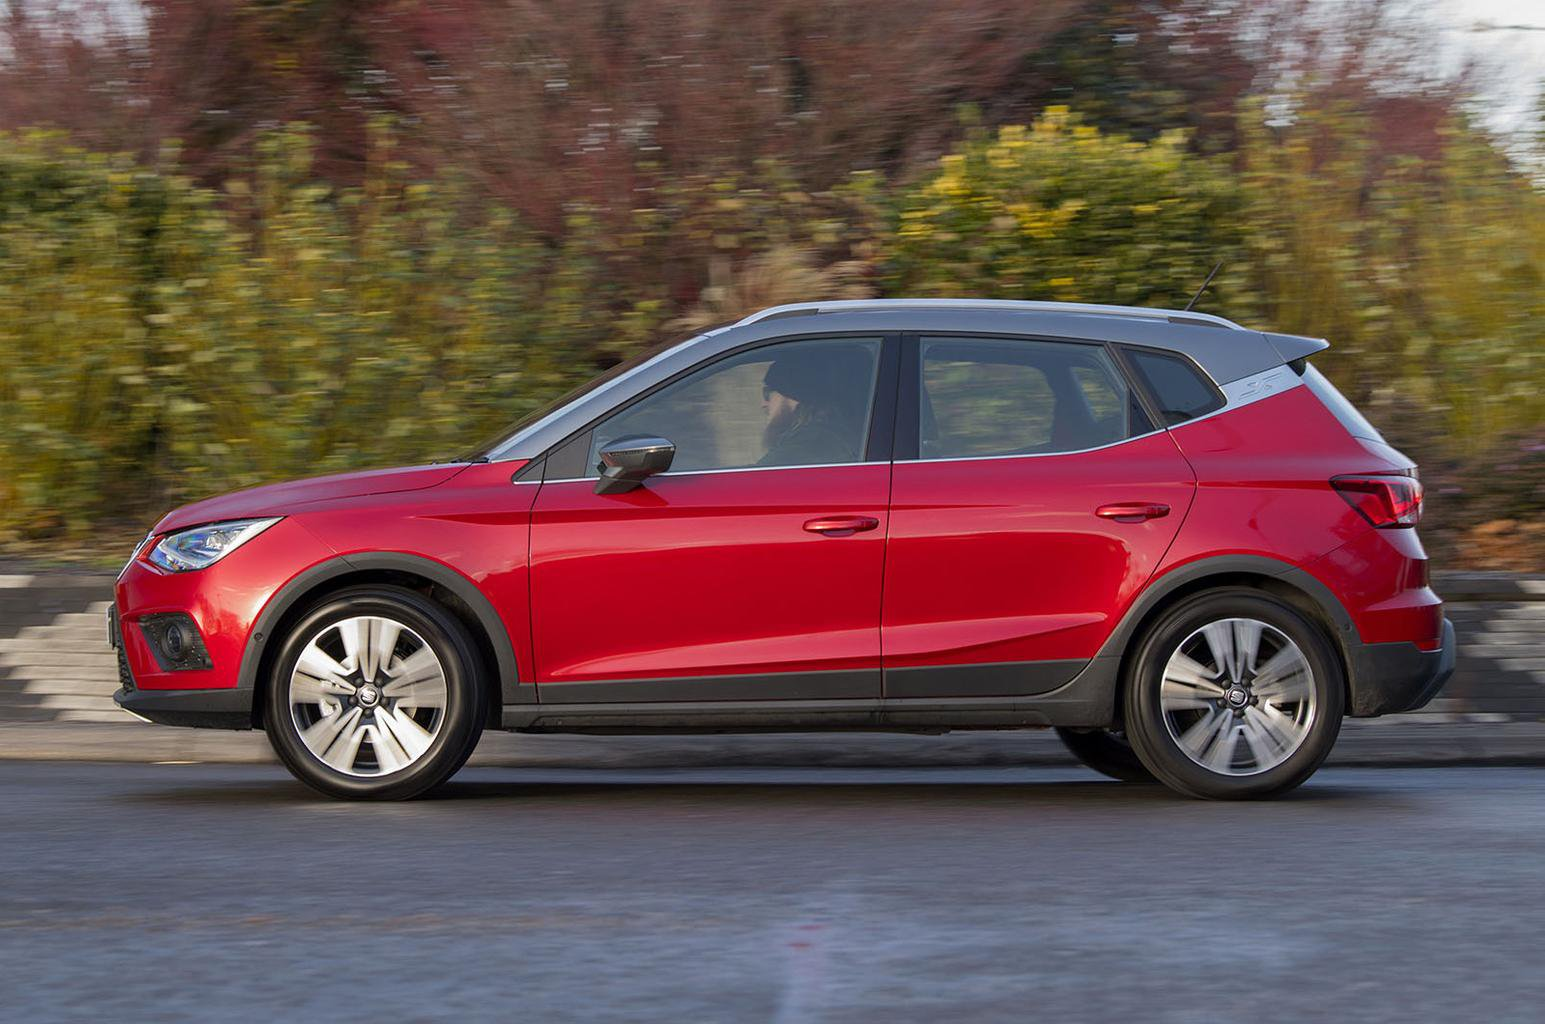 2018 Seat Arona 1.5 TSI Evo 150 review - verdict